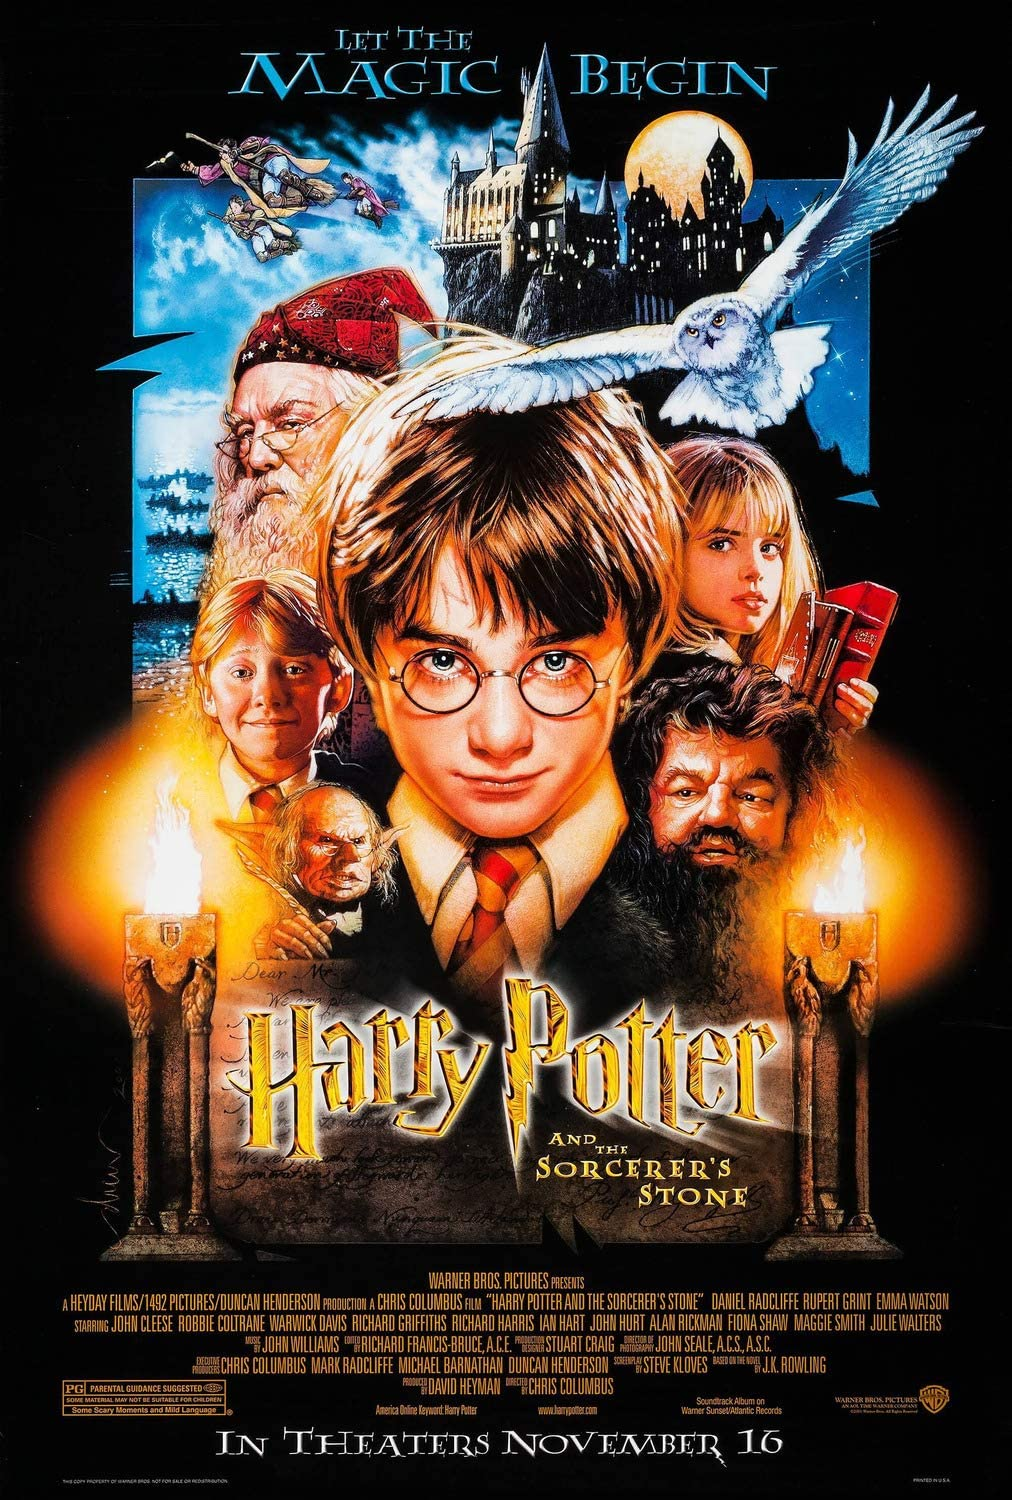 HARRY POTTER /& THE PHILOSOPHER'S STONE Movie PHOTO Print POSTER Textless Art 004